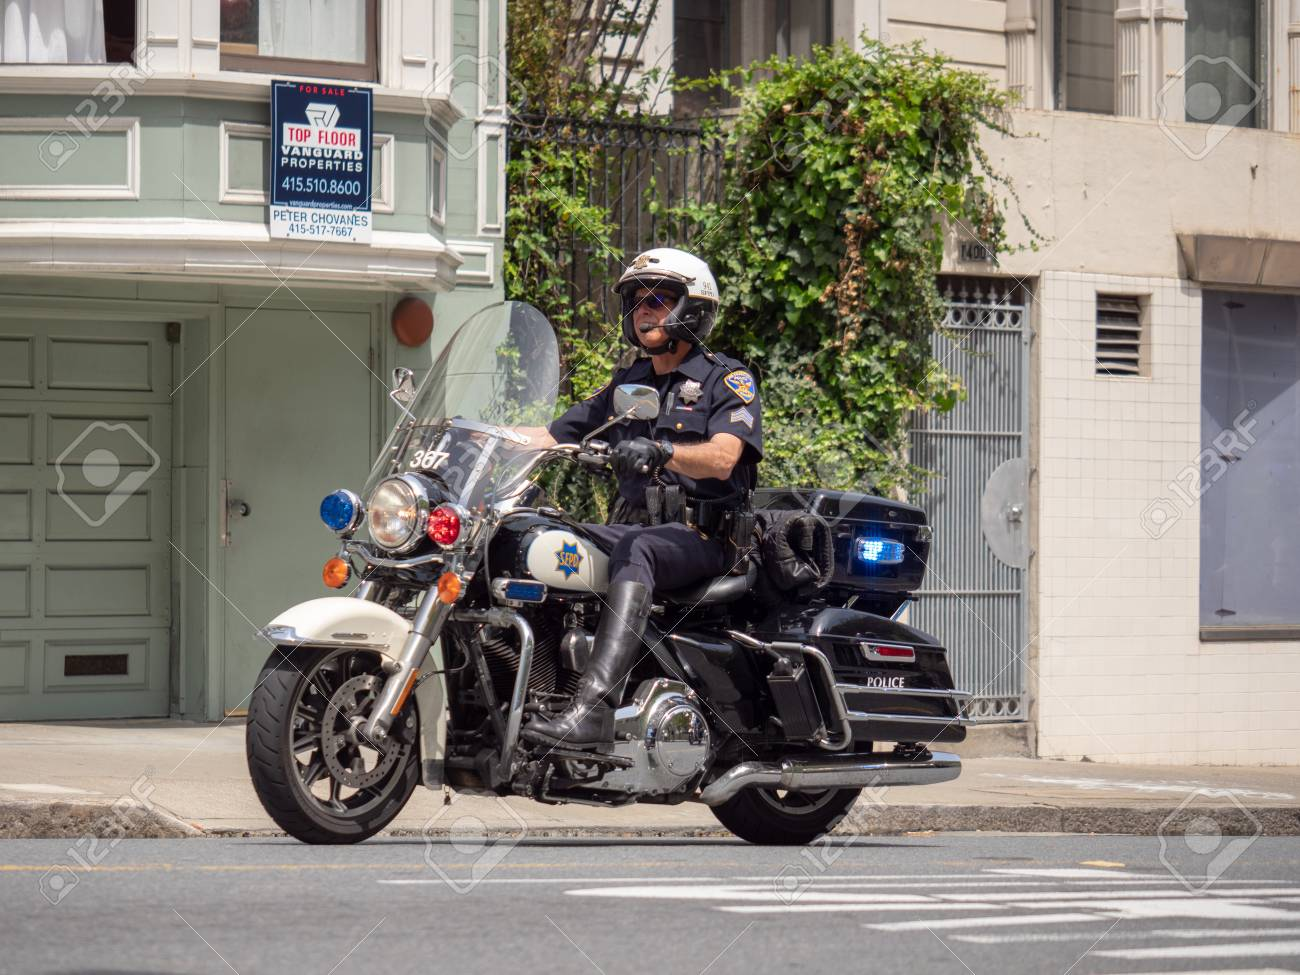 San Francisco Motorcycle >> San Francisco Ca April 22 2018 San Francisco Police Department